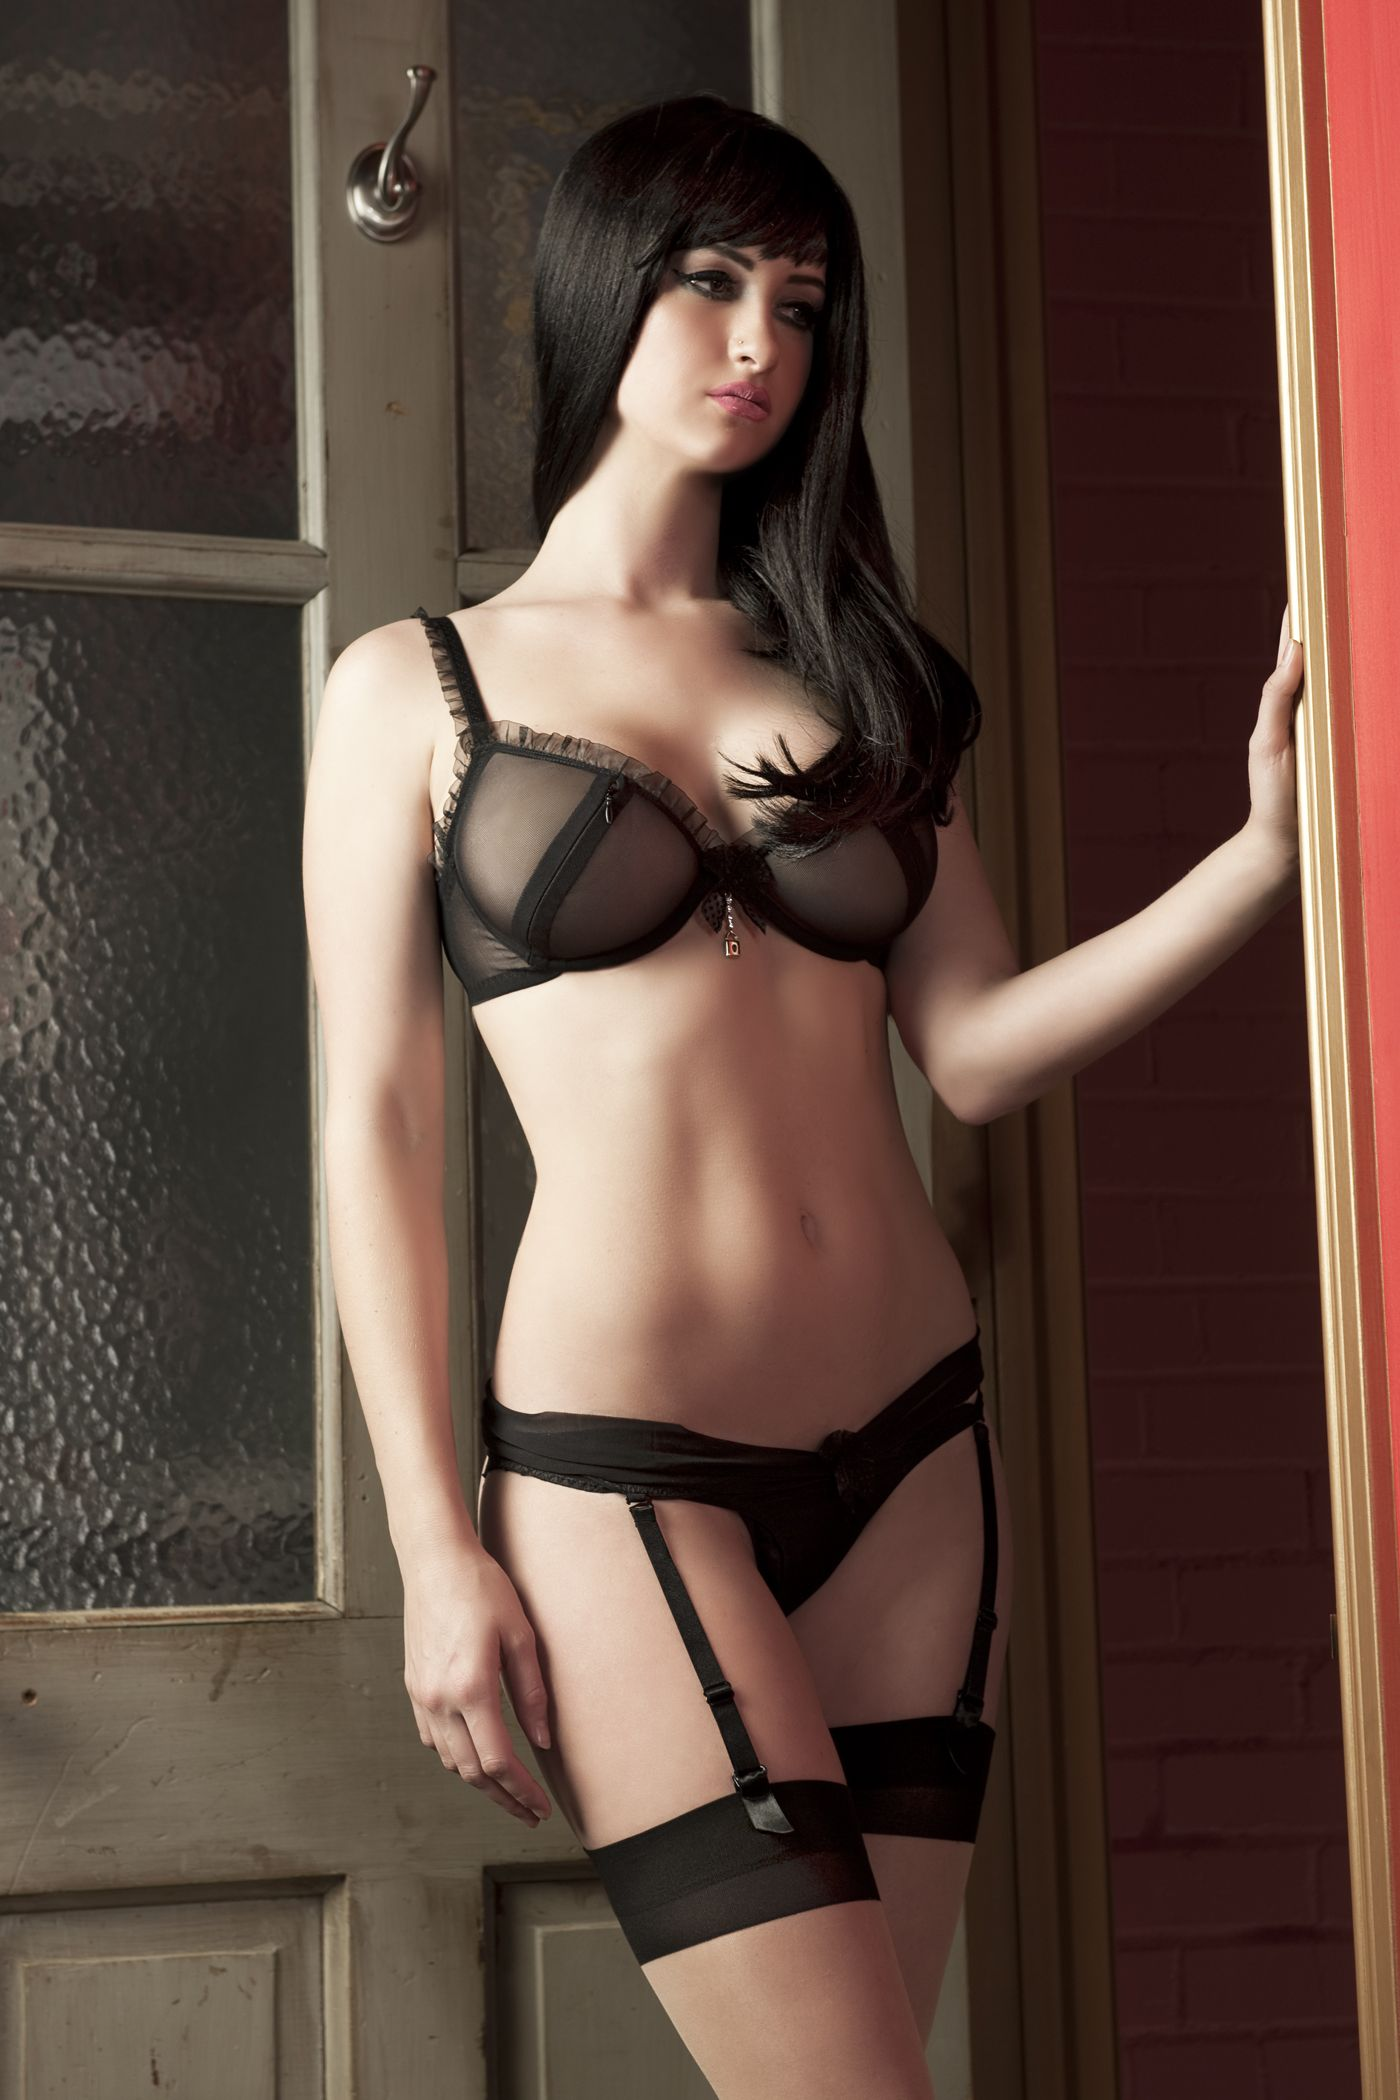 French Lingerie | Fine French Lingerie of Patrice CATANZARO 2 | Lingerie | Pinterest | French ...